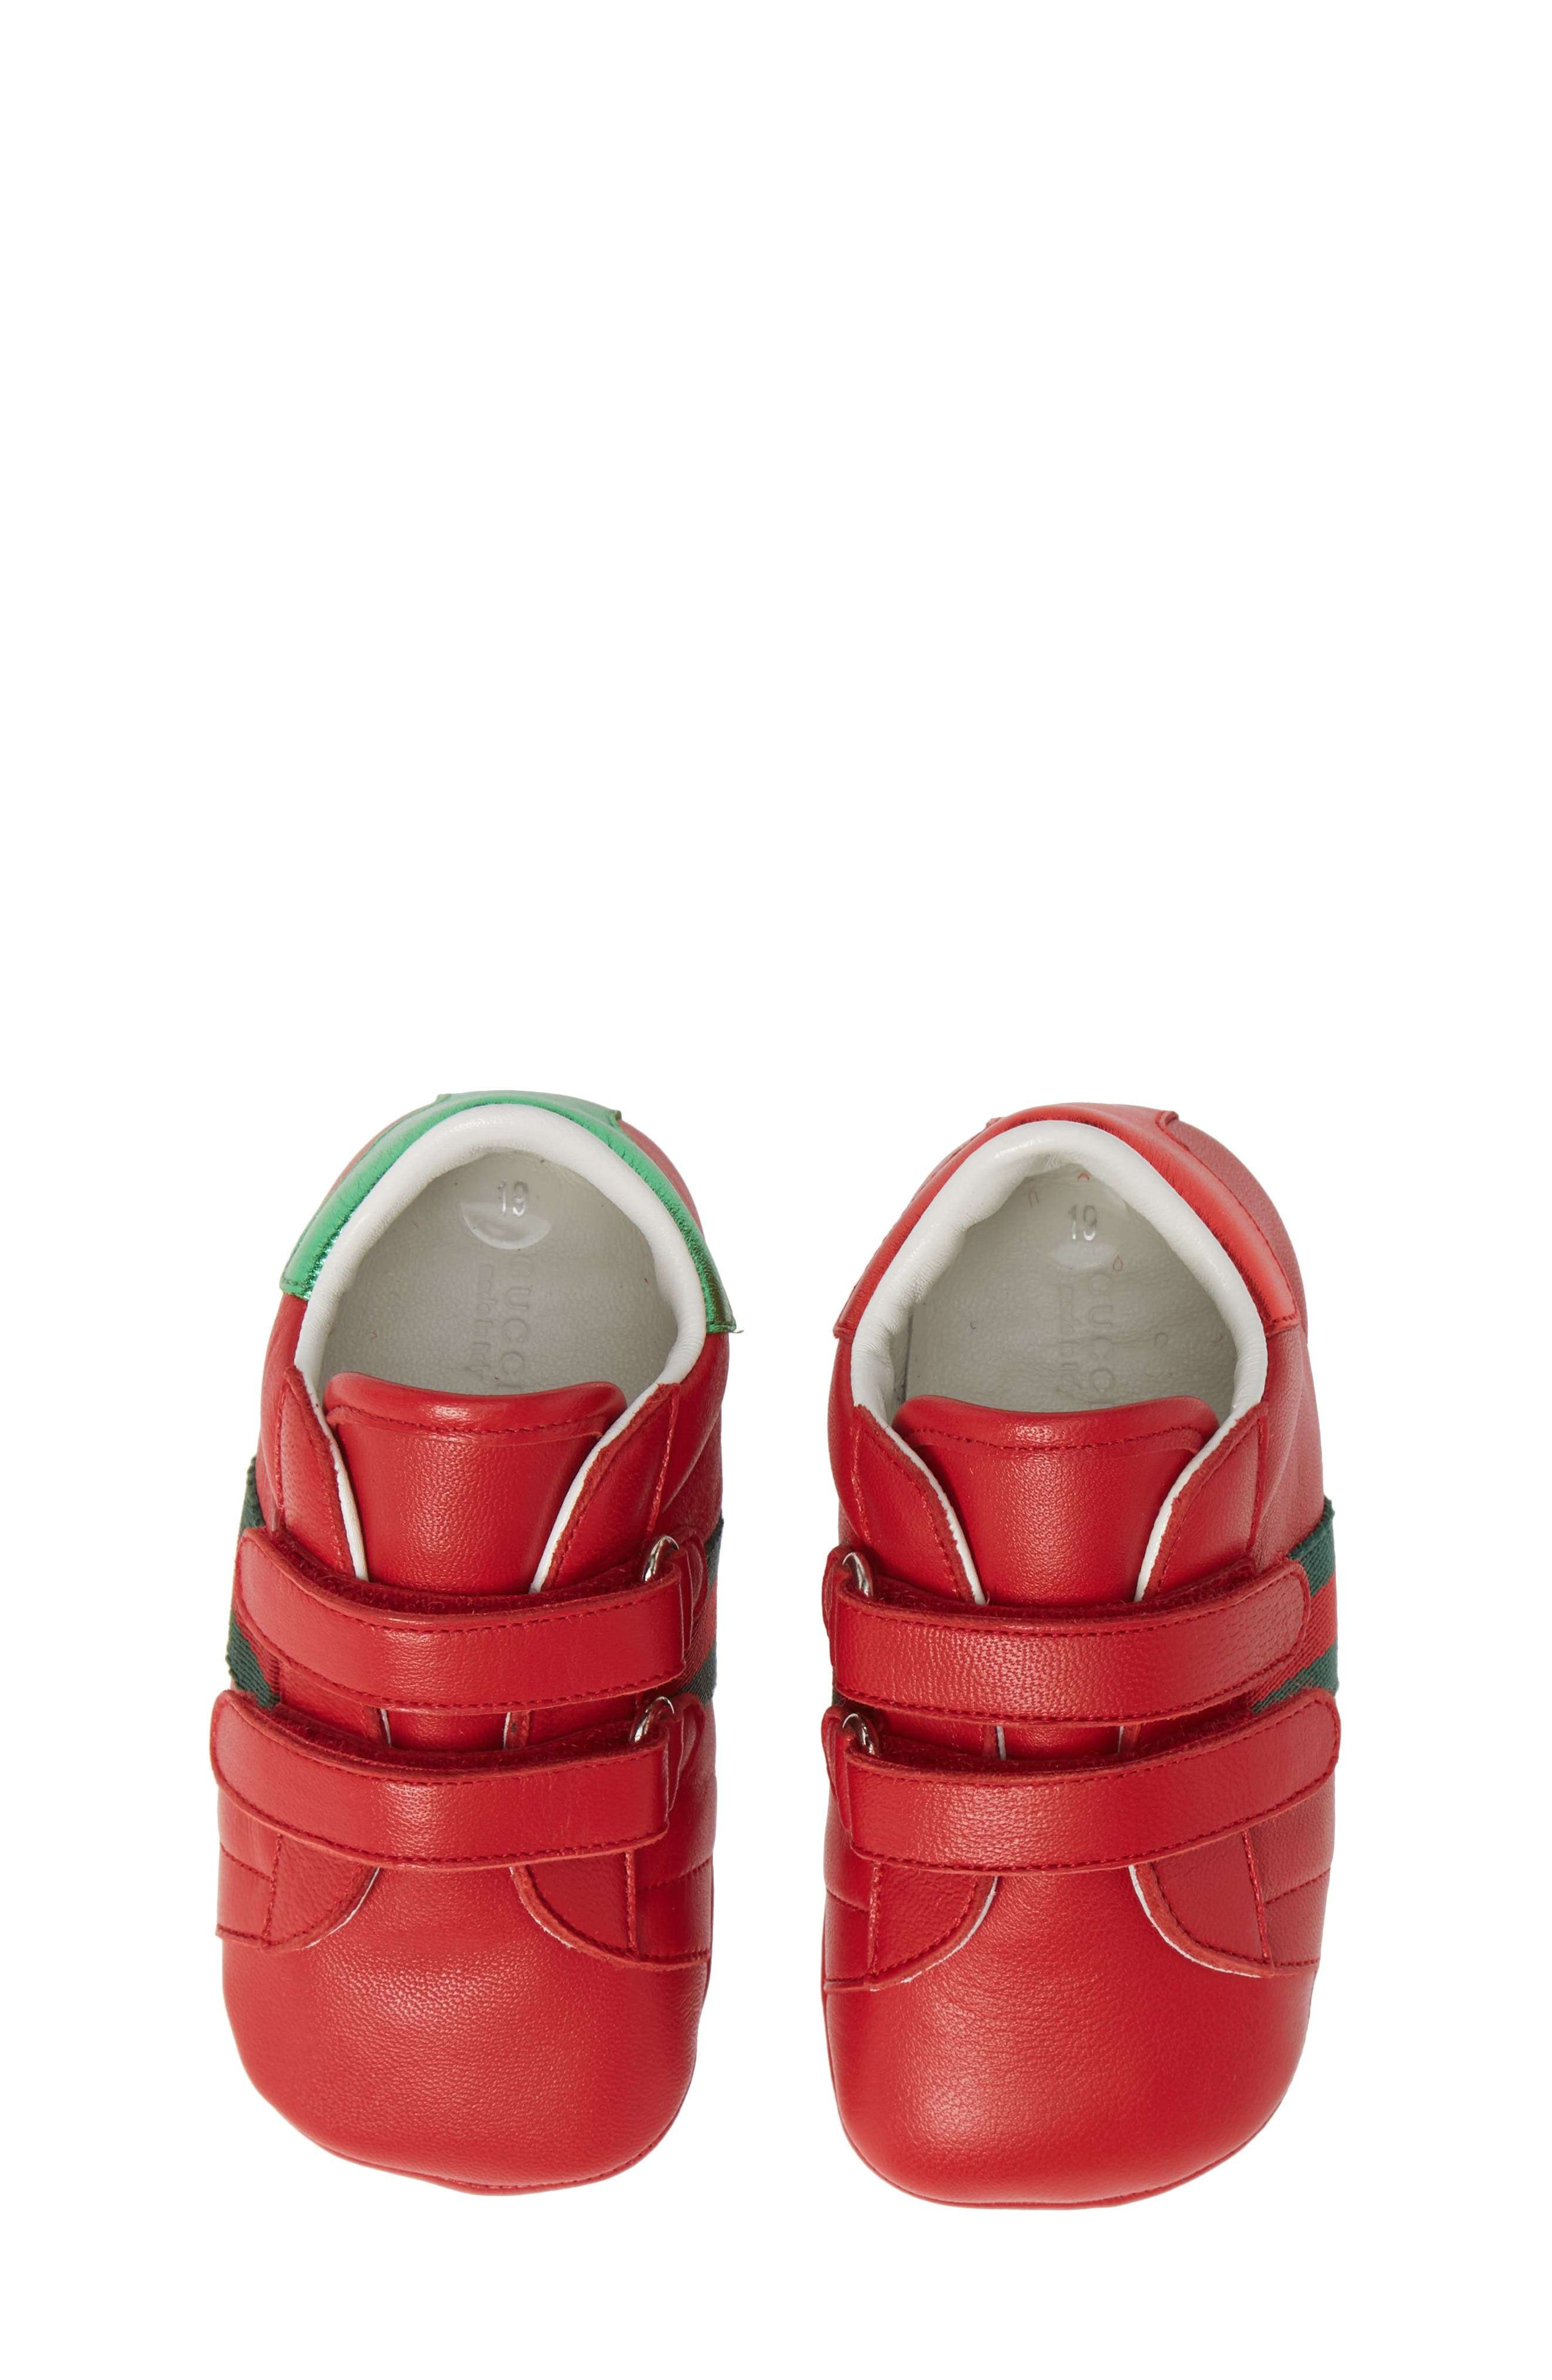 Ace Crib Shoe,                             Main thumbnail 1, color,                             RED